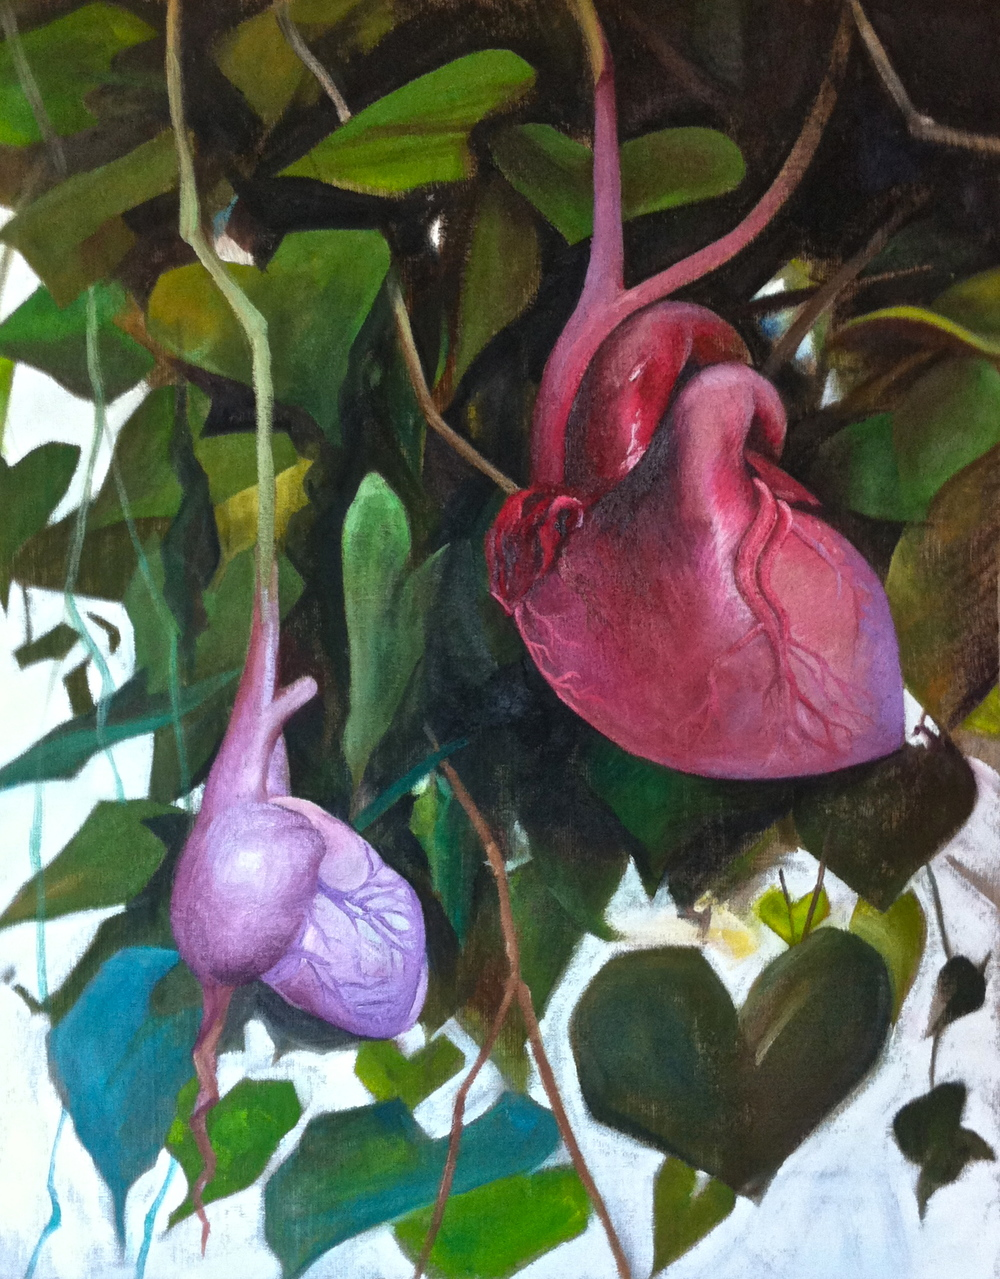 Katherine Rutecki,  With a Hanging Heart,  oil on linen, 42x60cm, 2013